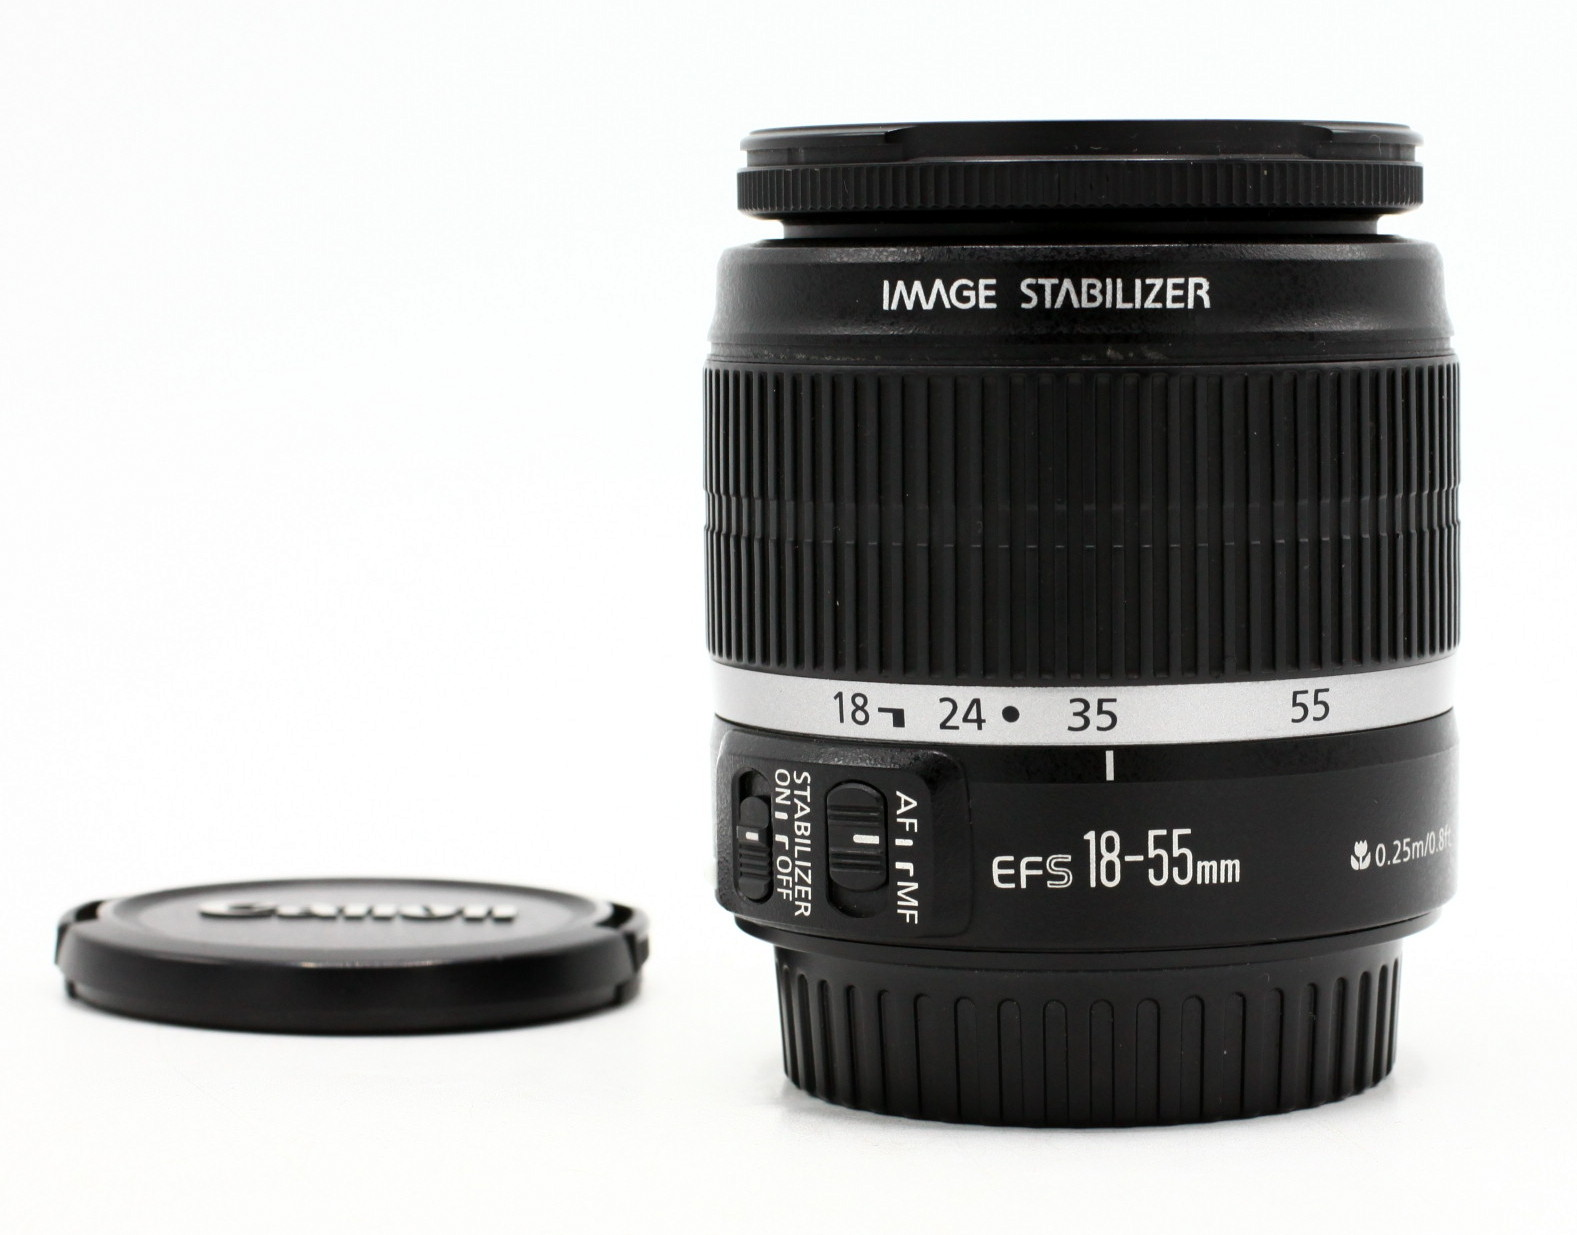 Canon EF-S 18-55mm F/3.5-5.6 iS occasion